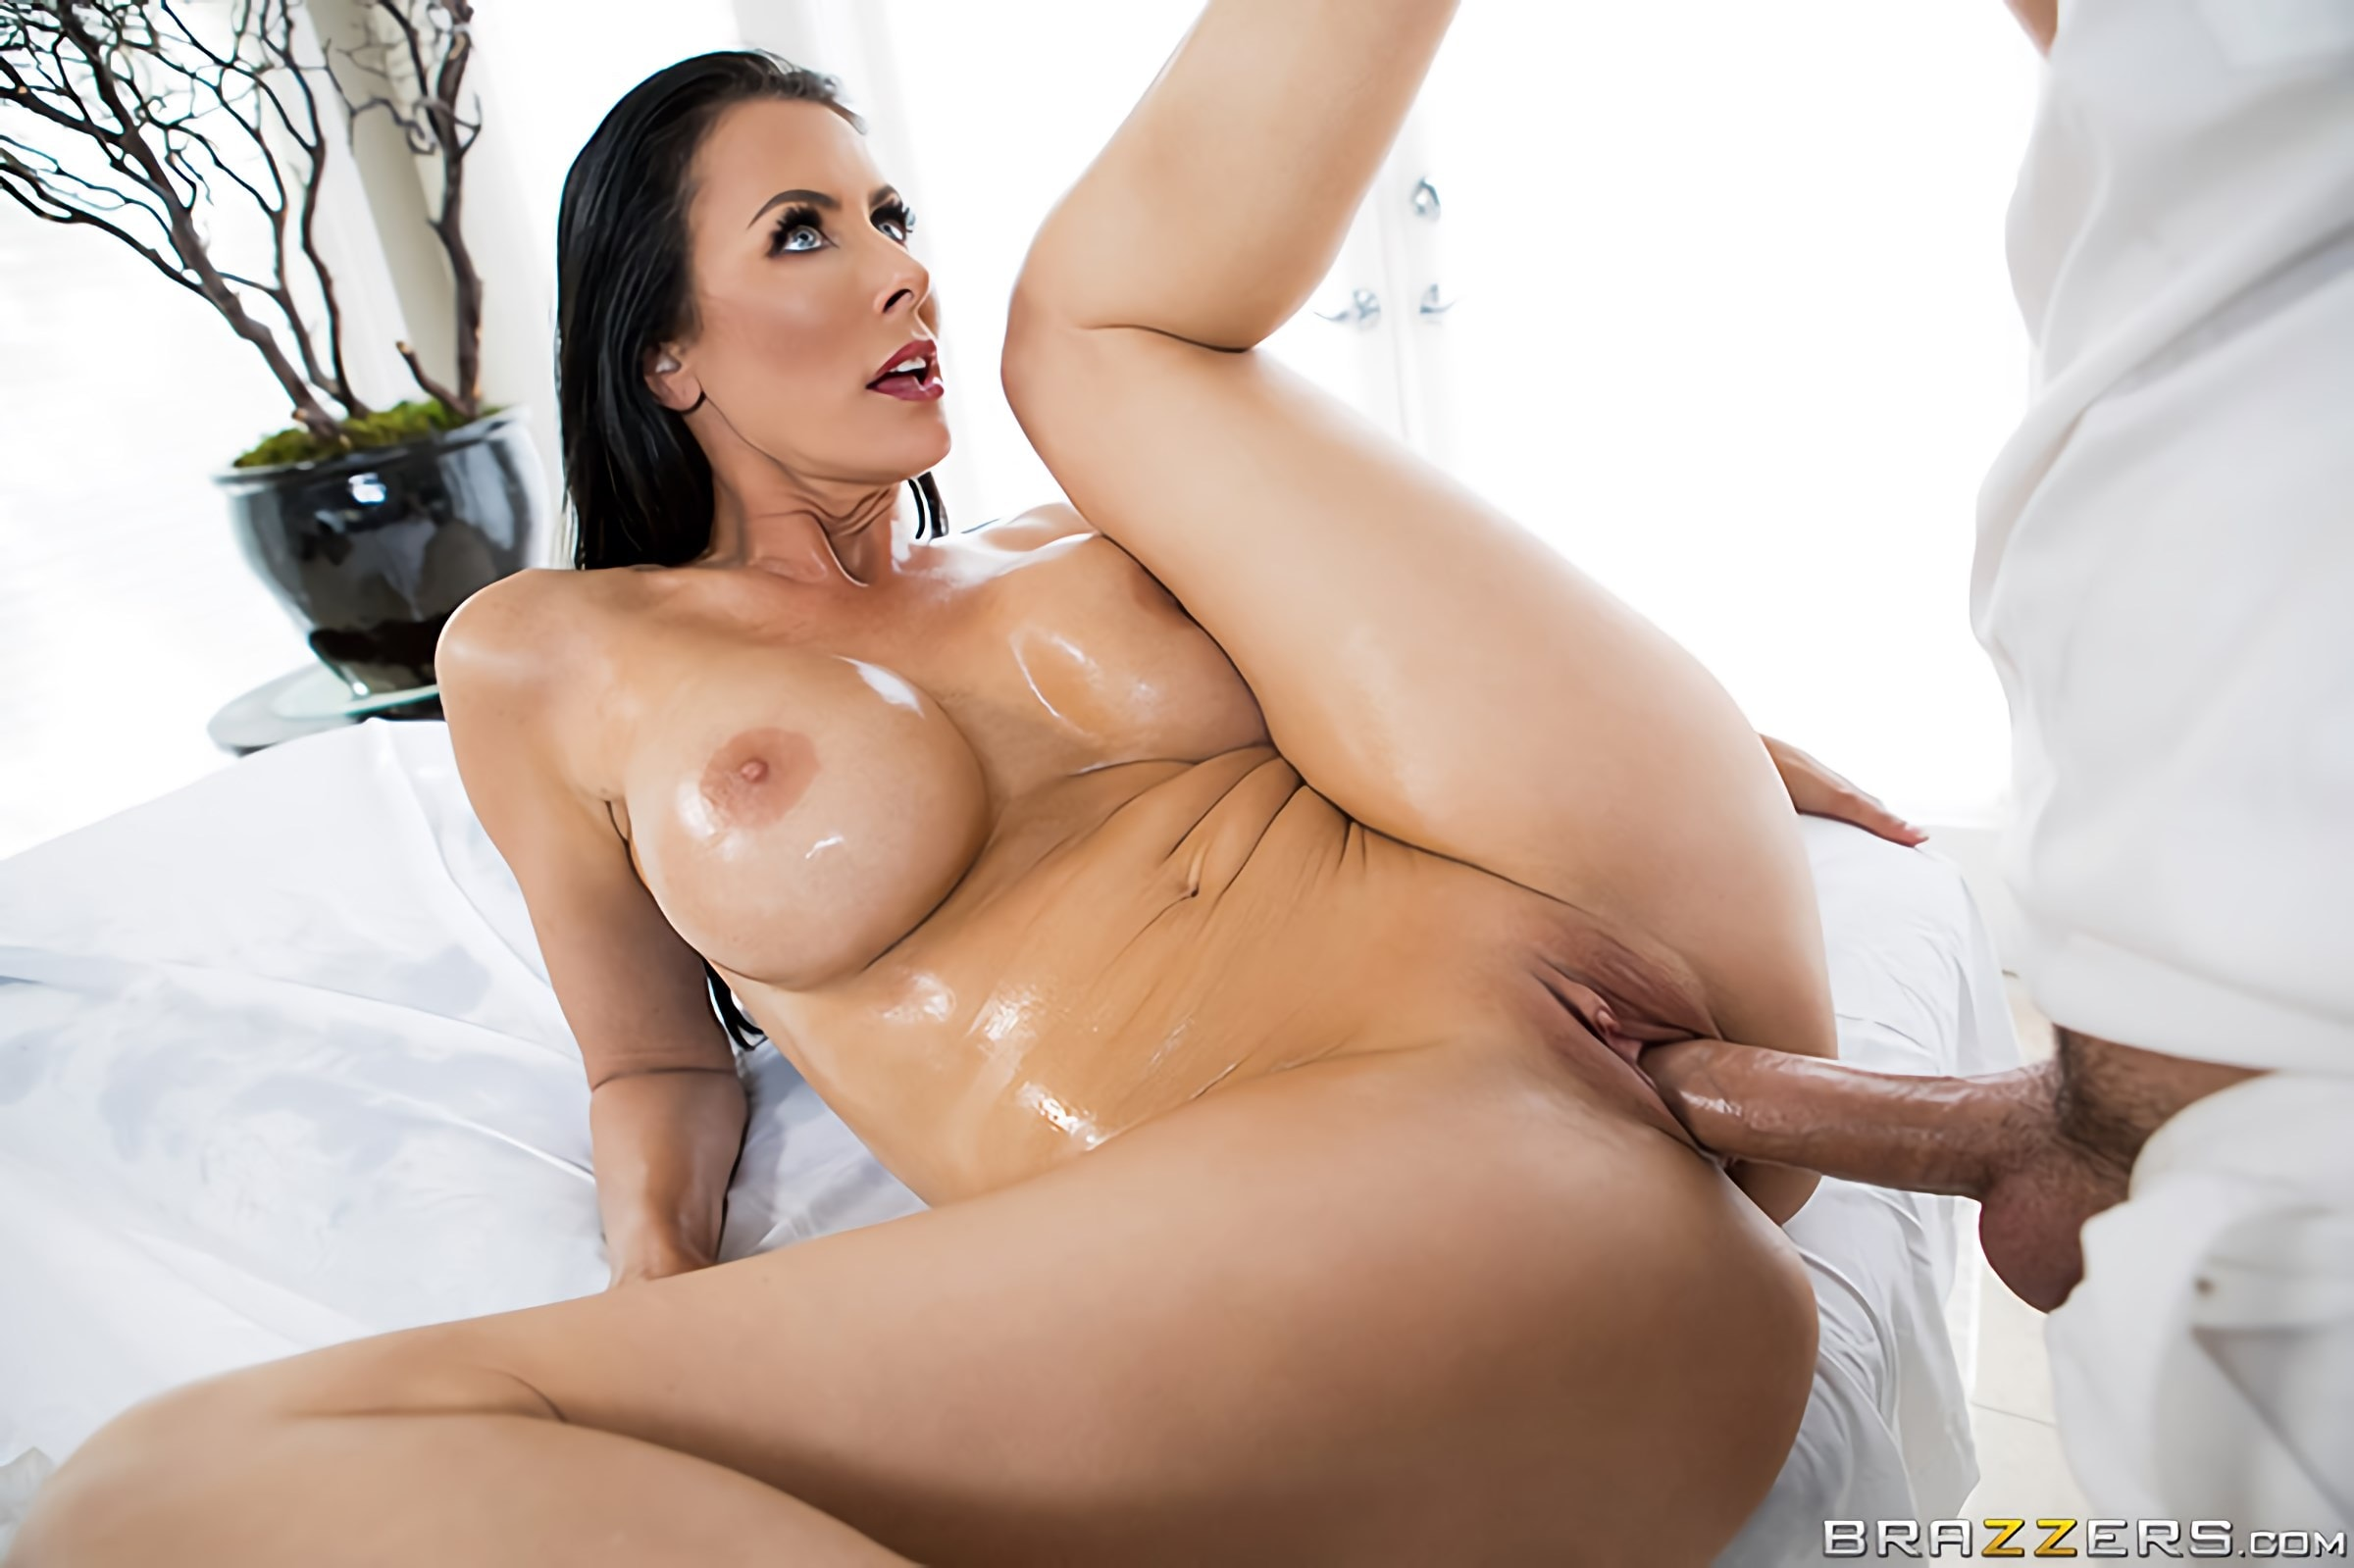 Reagan Foxx - Oil Spill Thrills | Picture (4)